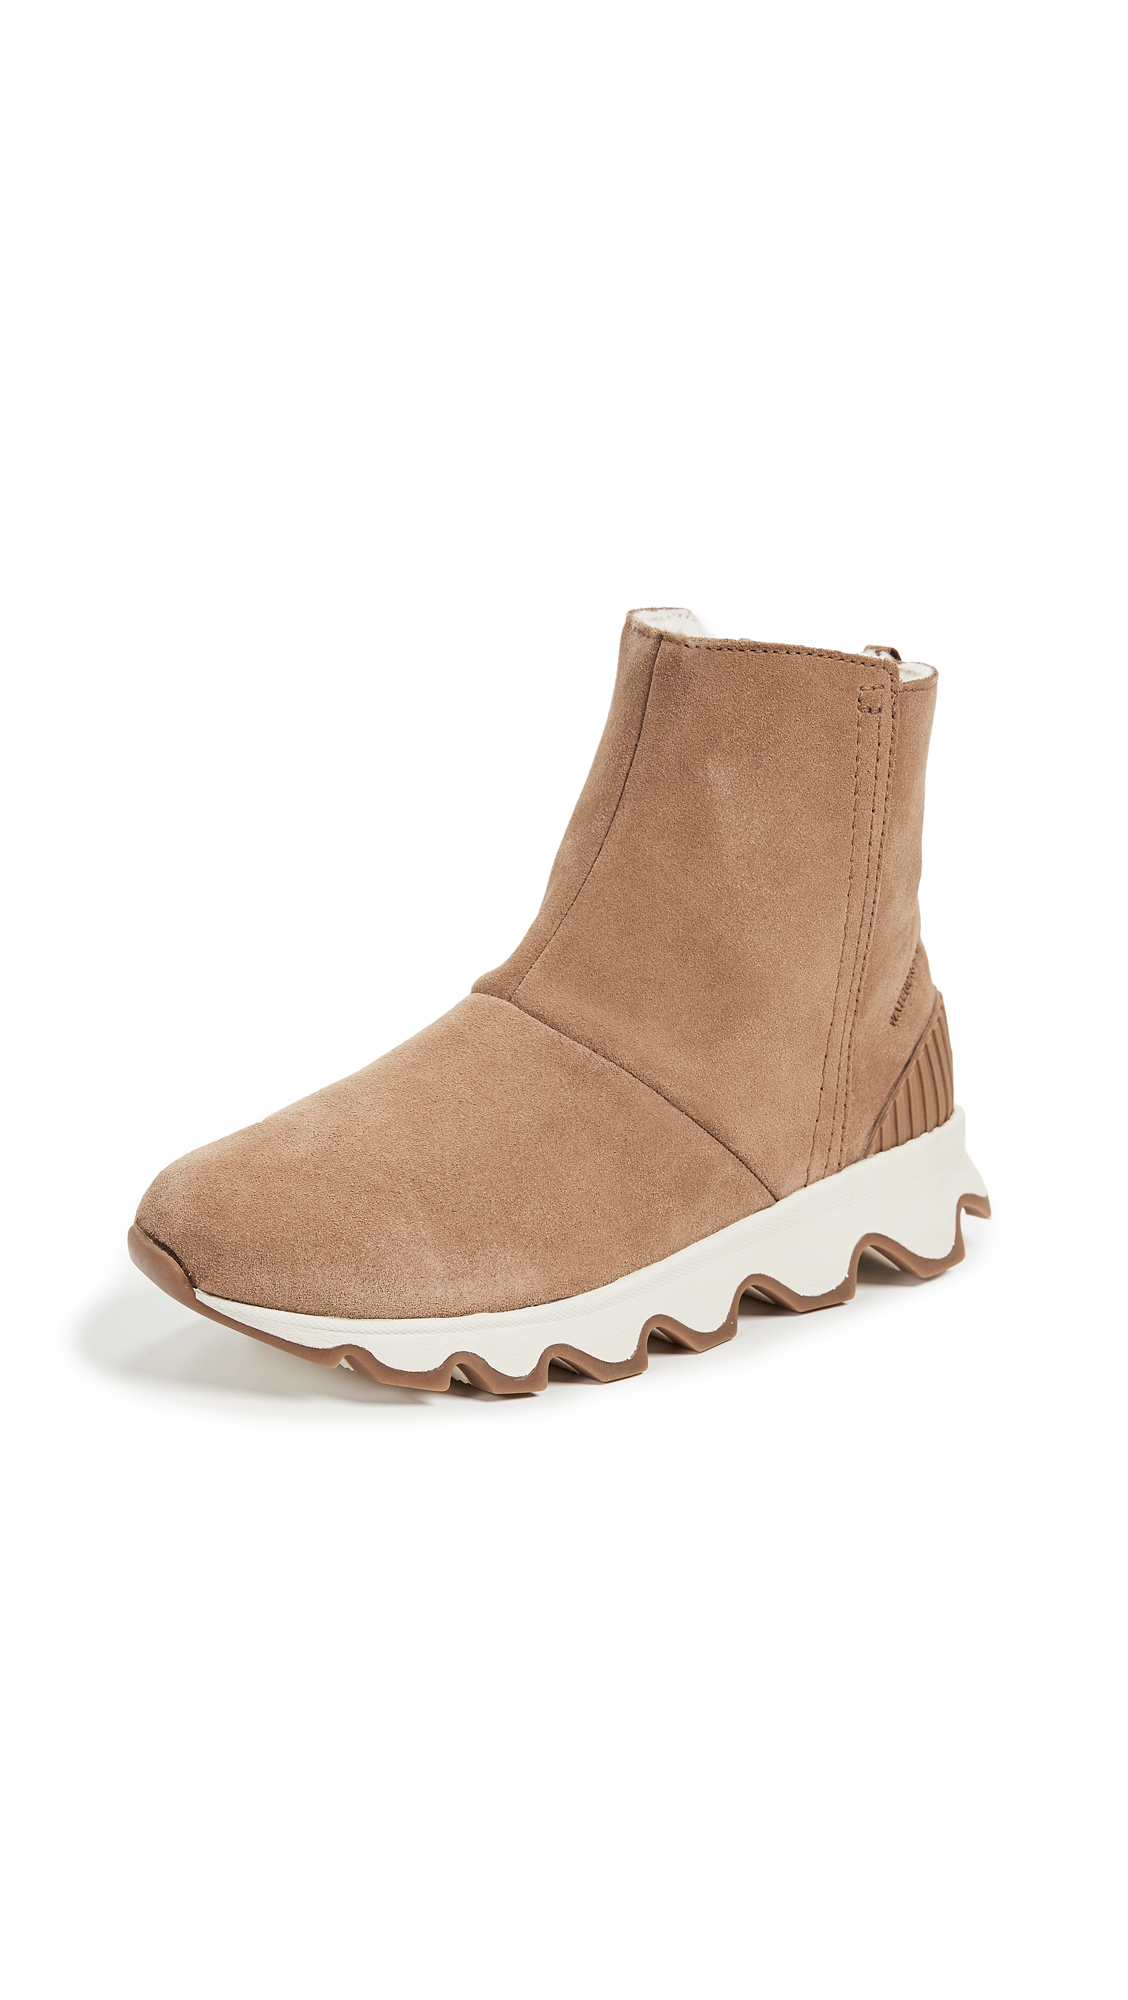 Sorel Kinetic Short Booties - Camel Brown